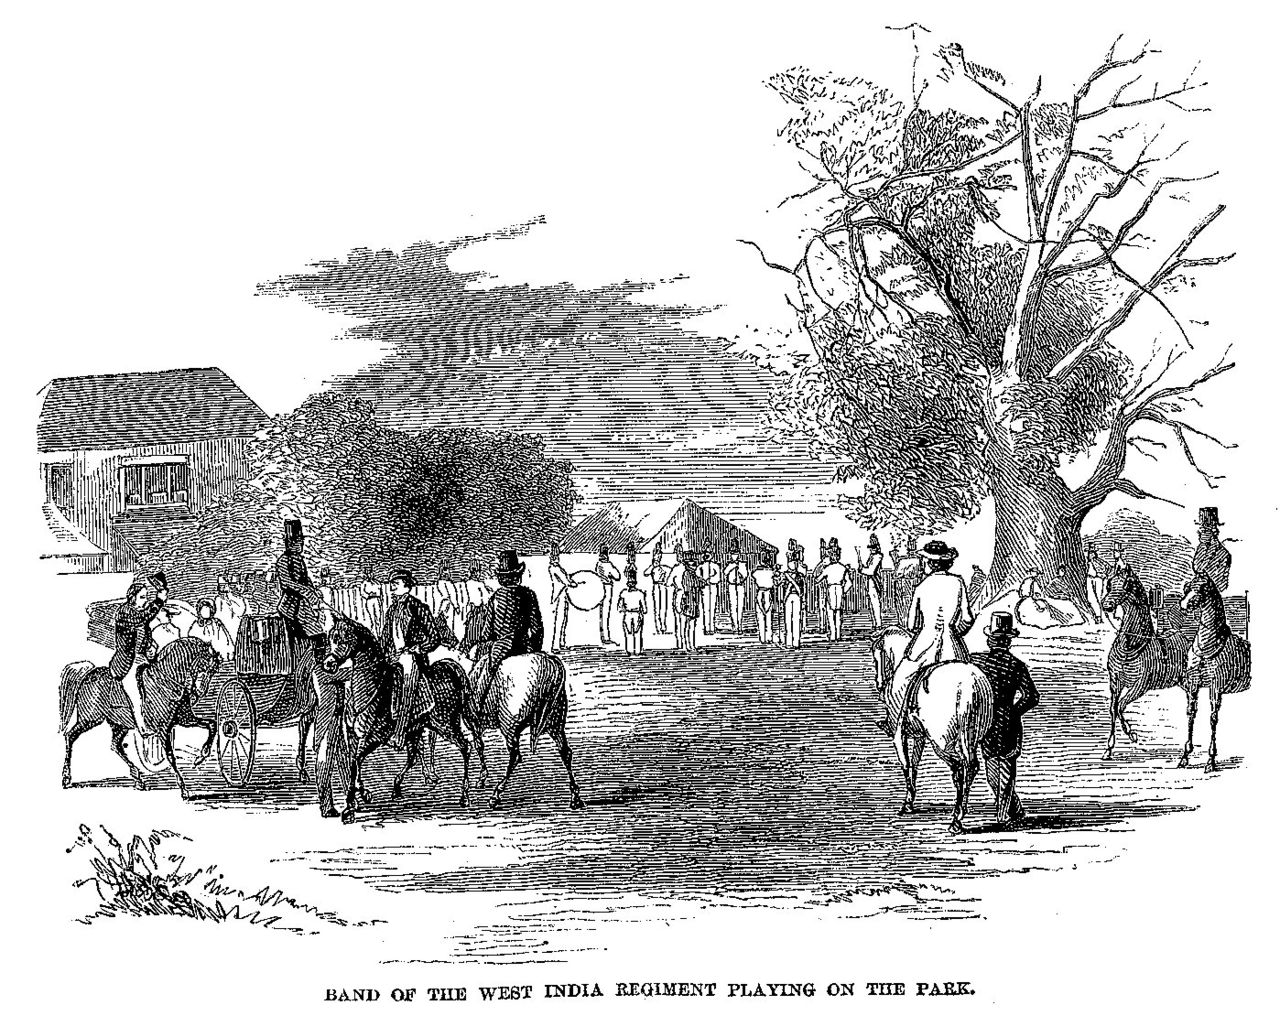 File:Cast-away in Jamaica - Band of the West India Regiment